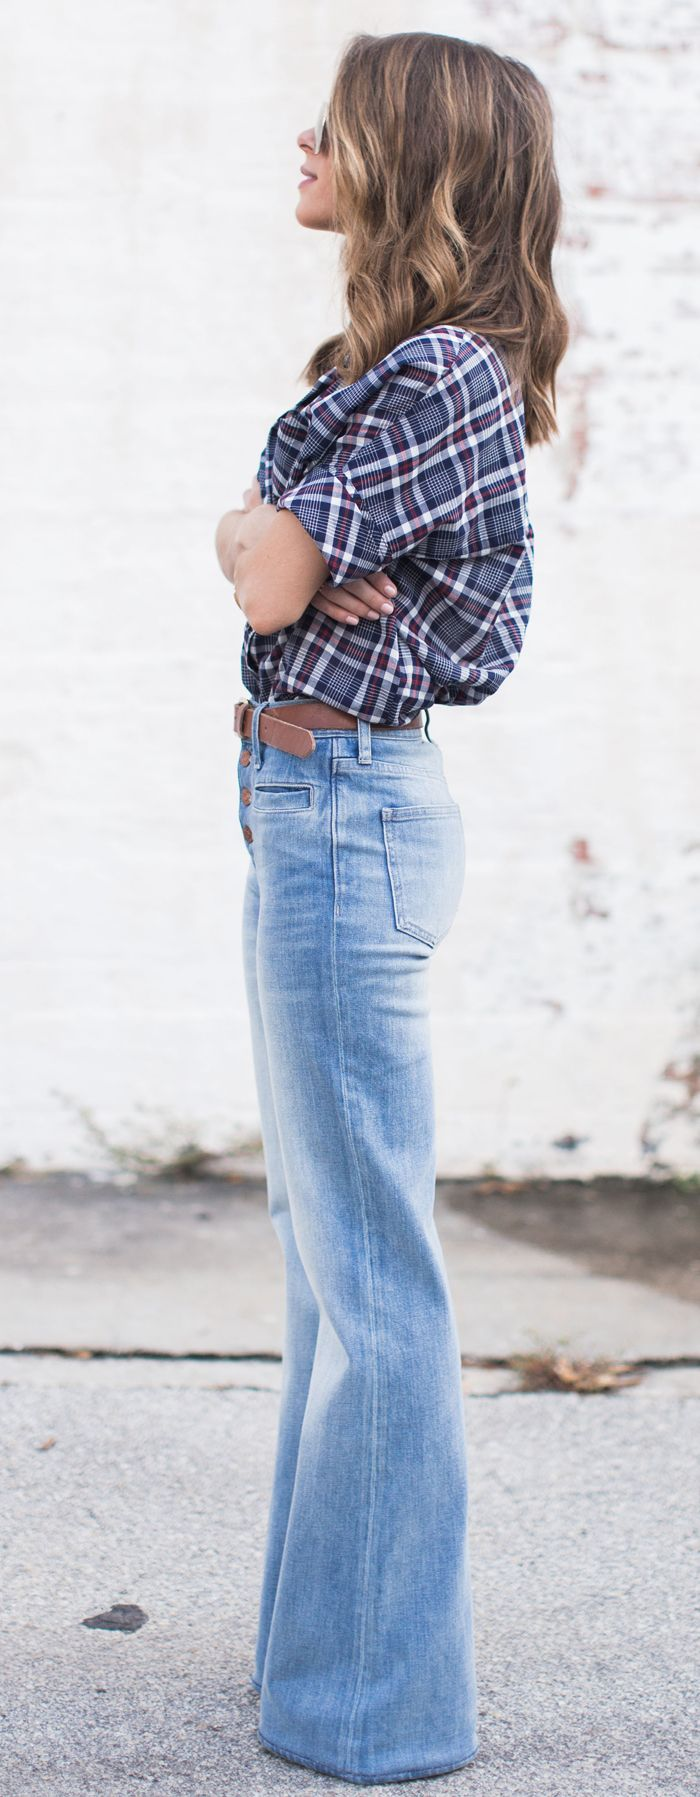 flared denim, belt, button up tucked in